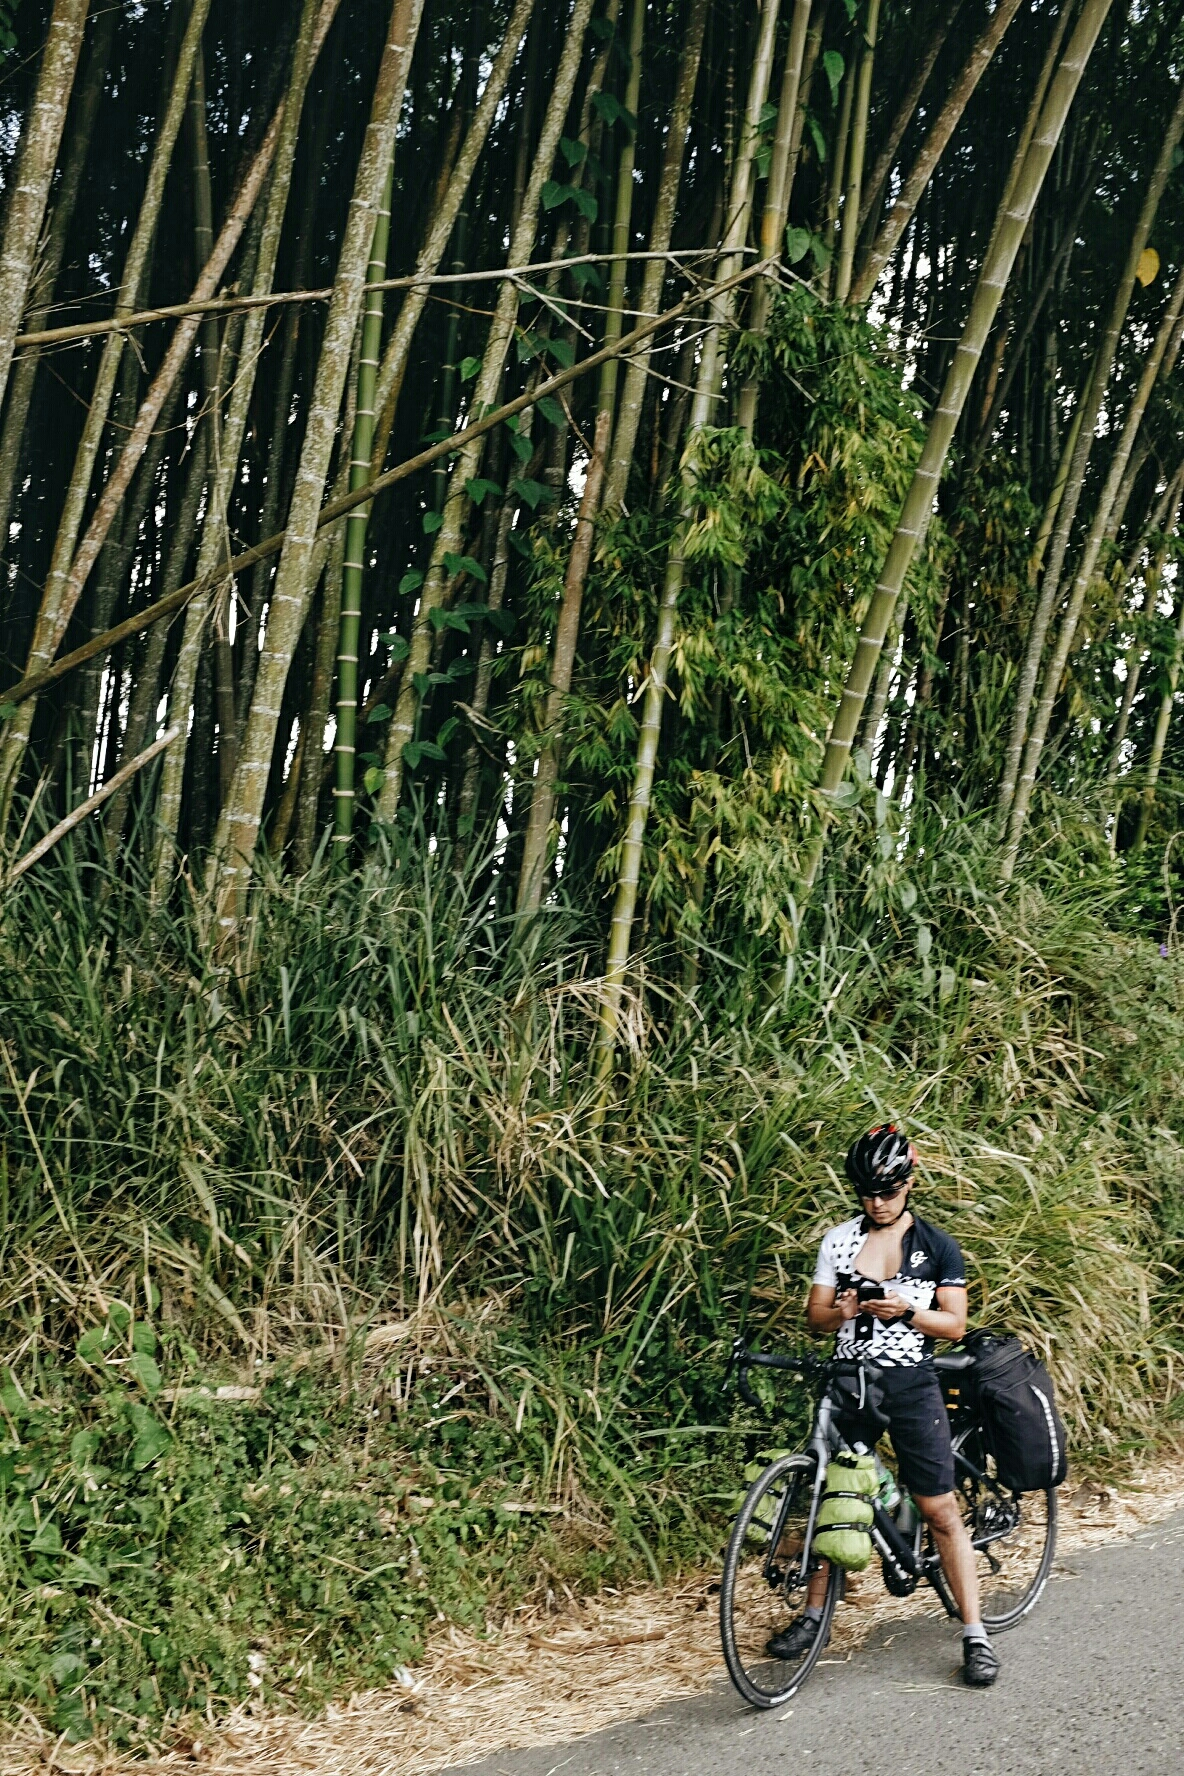 Guadua is a kind of bamboo. It grows extremely fast and is used in construction. Just don't touch it without gloves!